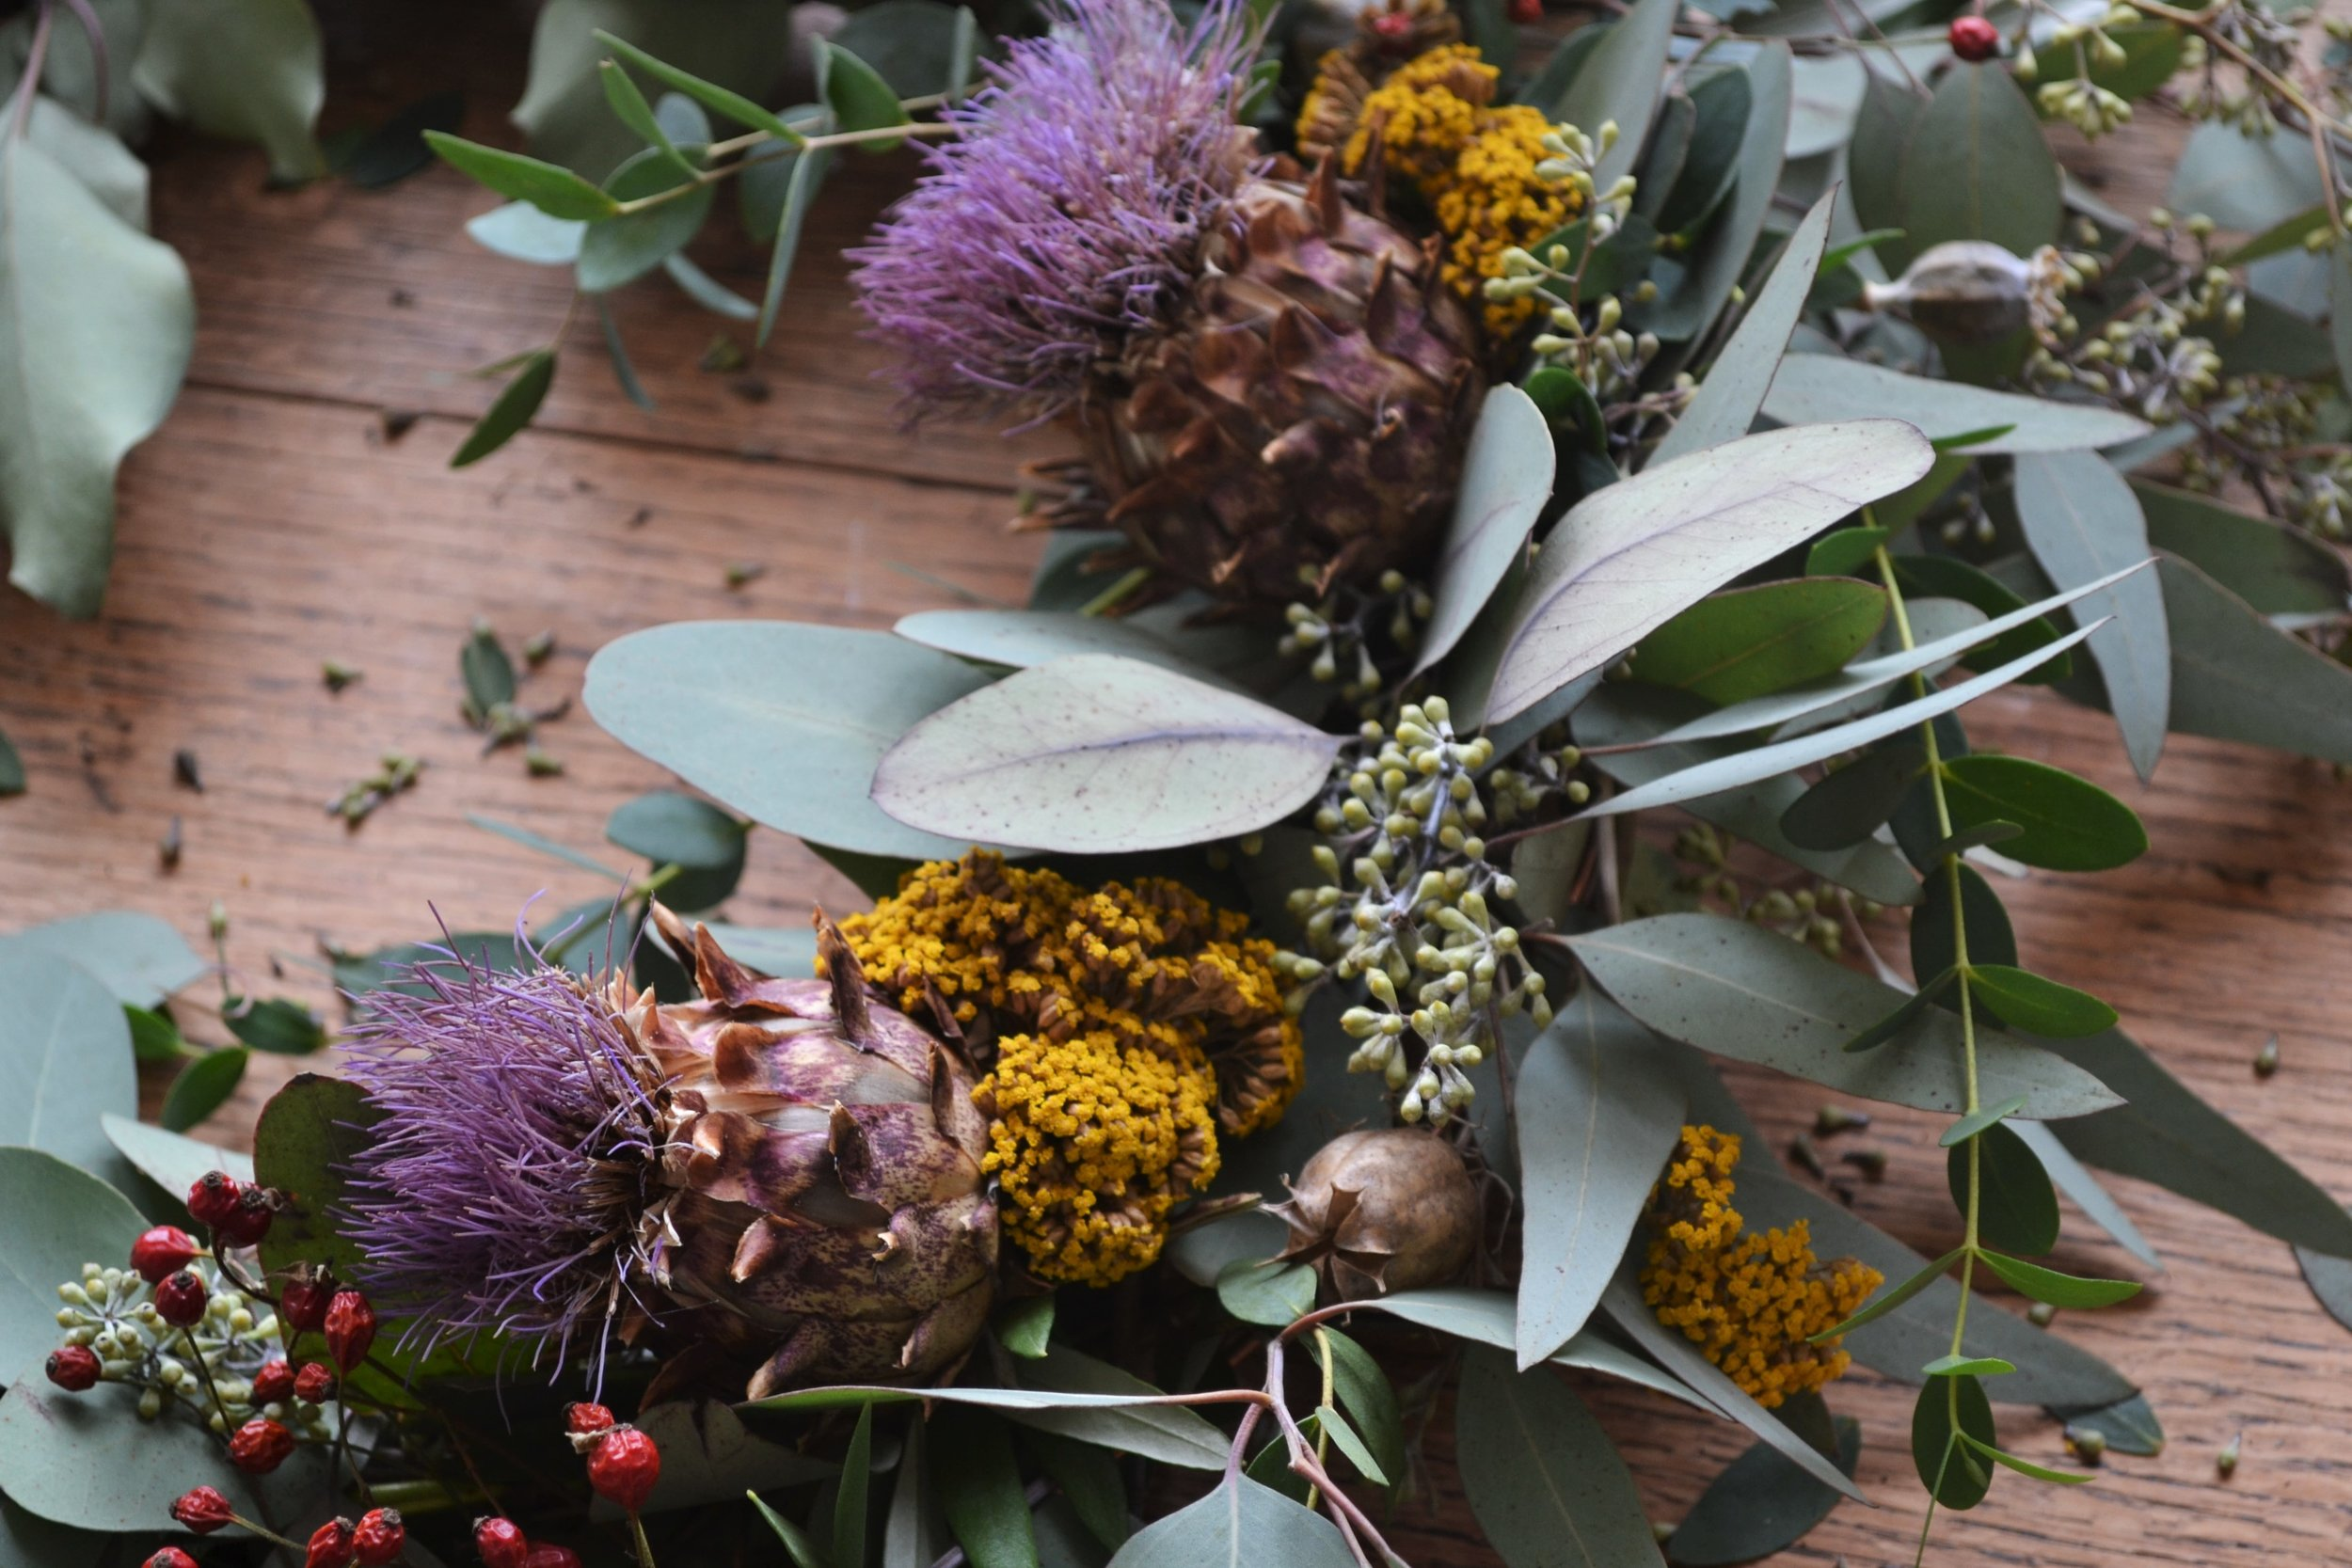 How-to-make-an-autumn-wreath-webb-and-farrer-brighton-flower-workshop (14).JPG